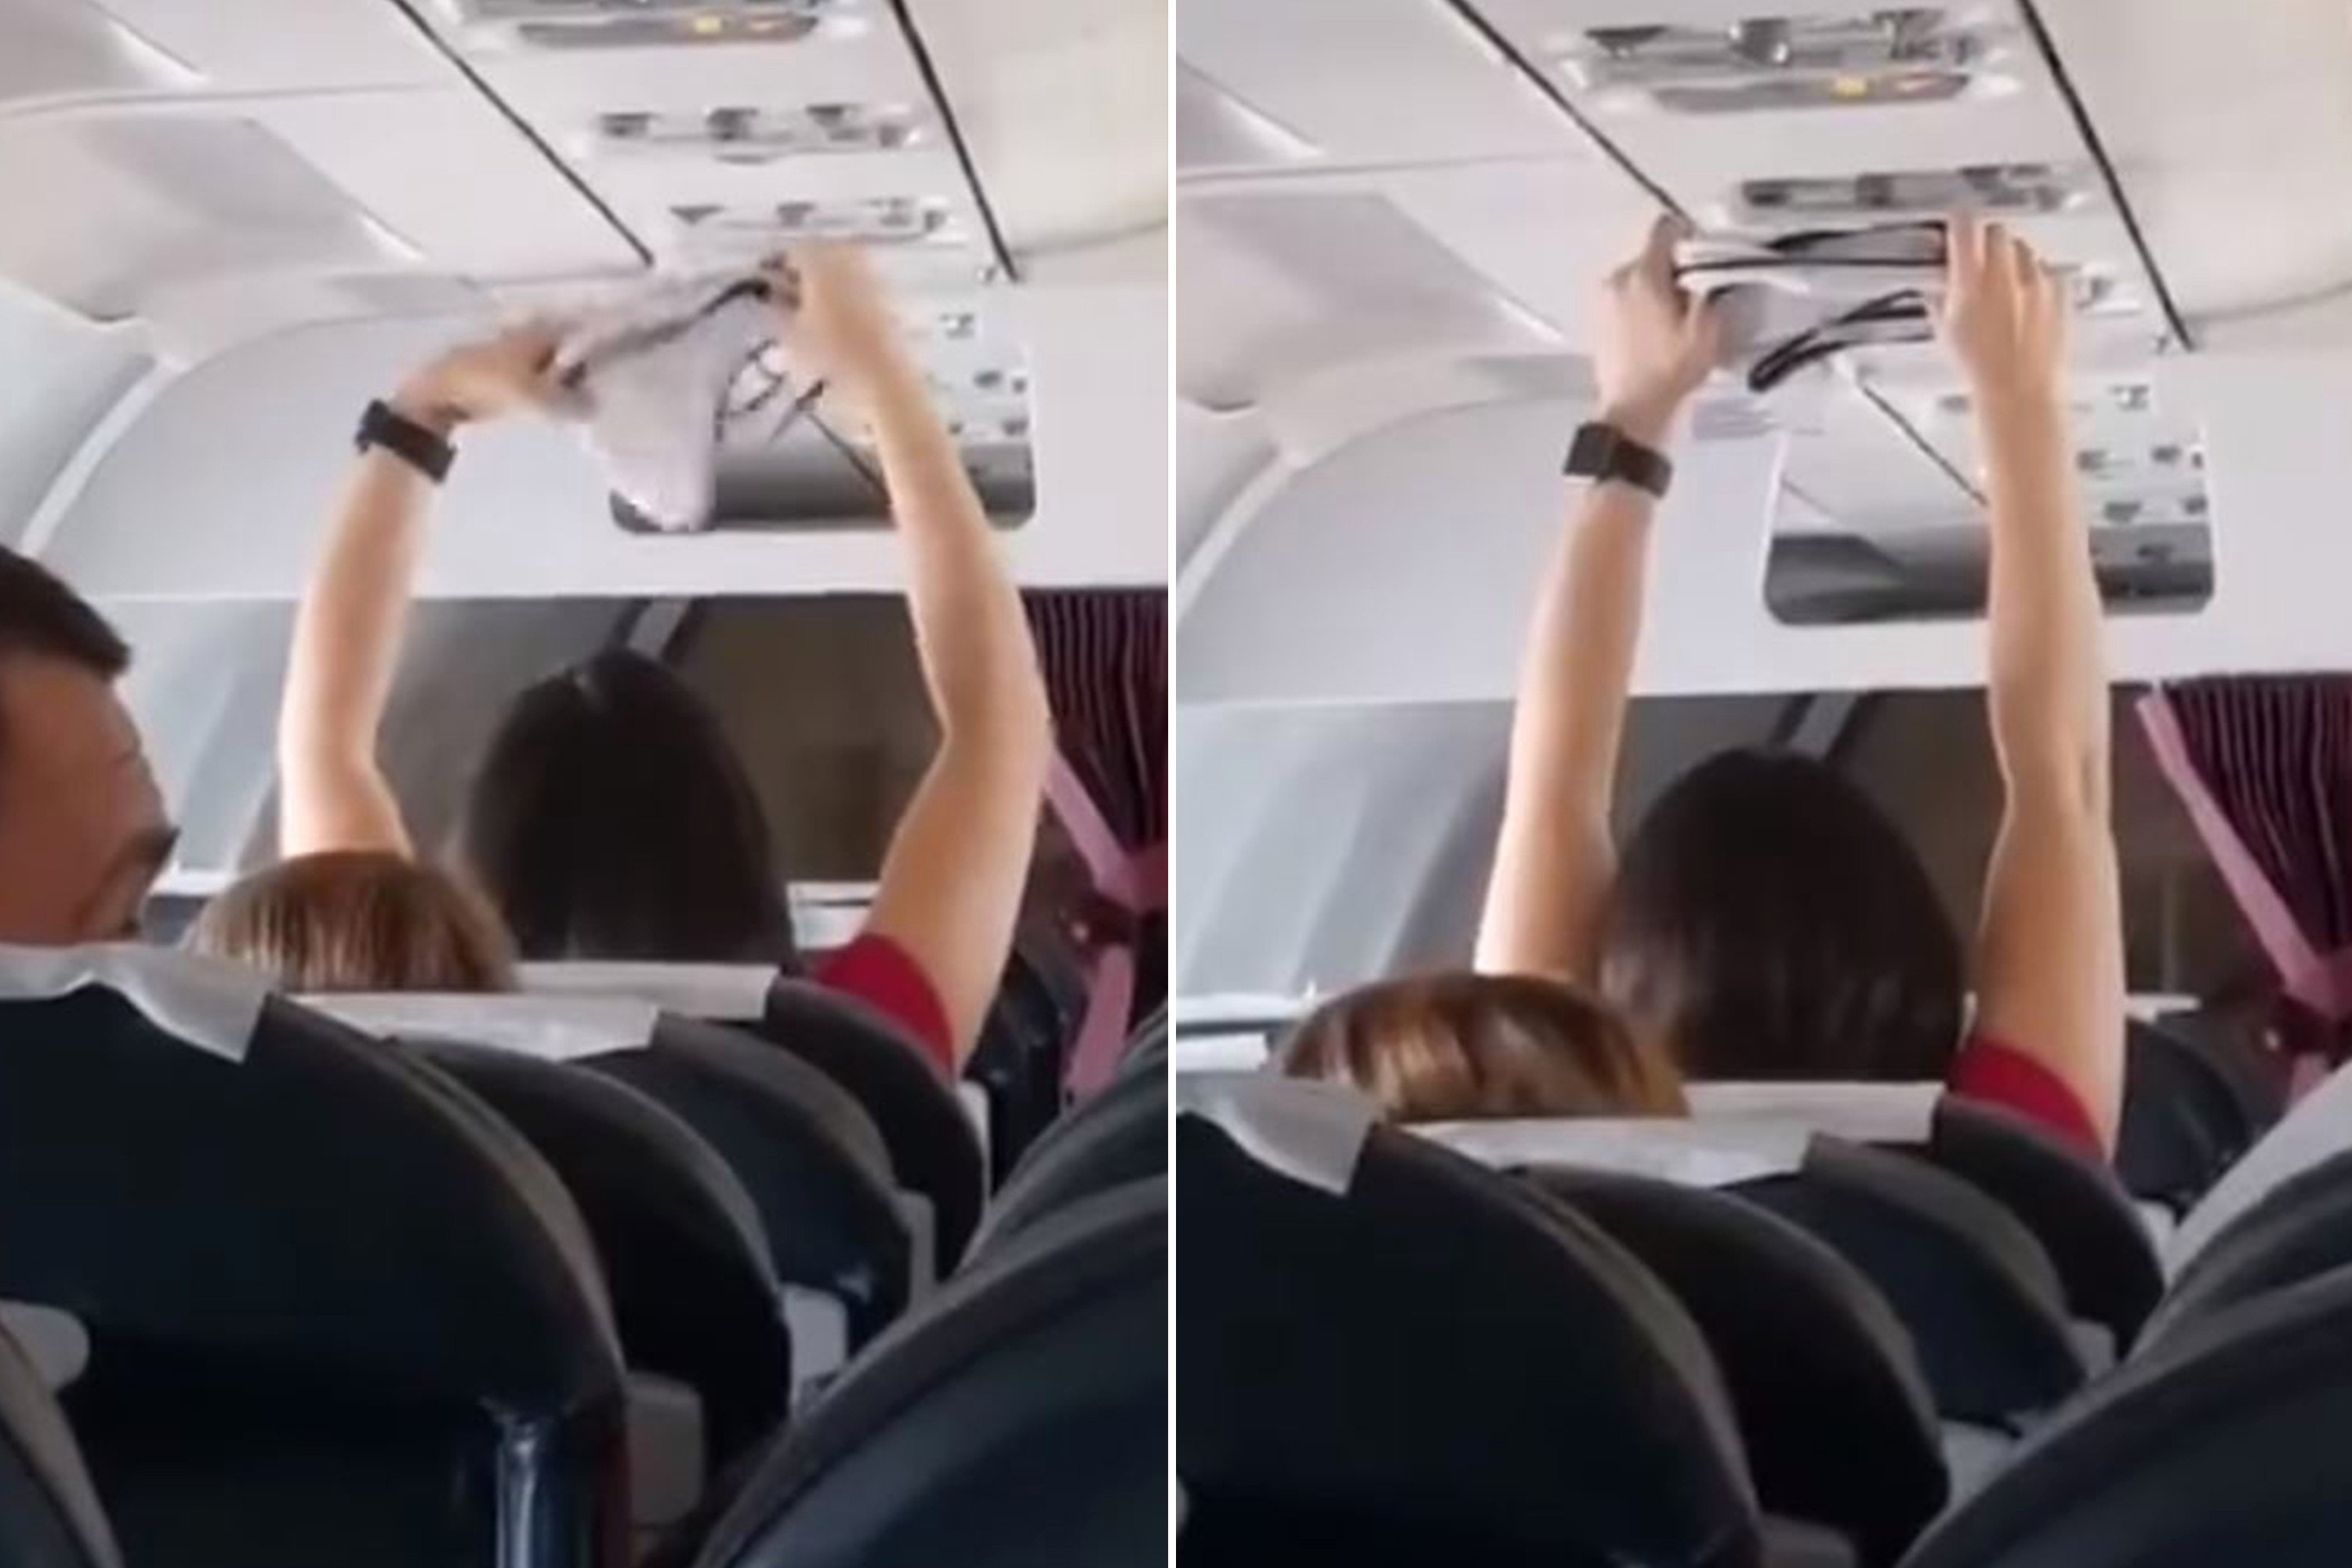 Woman seen drying underwear on air vent during packed flight